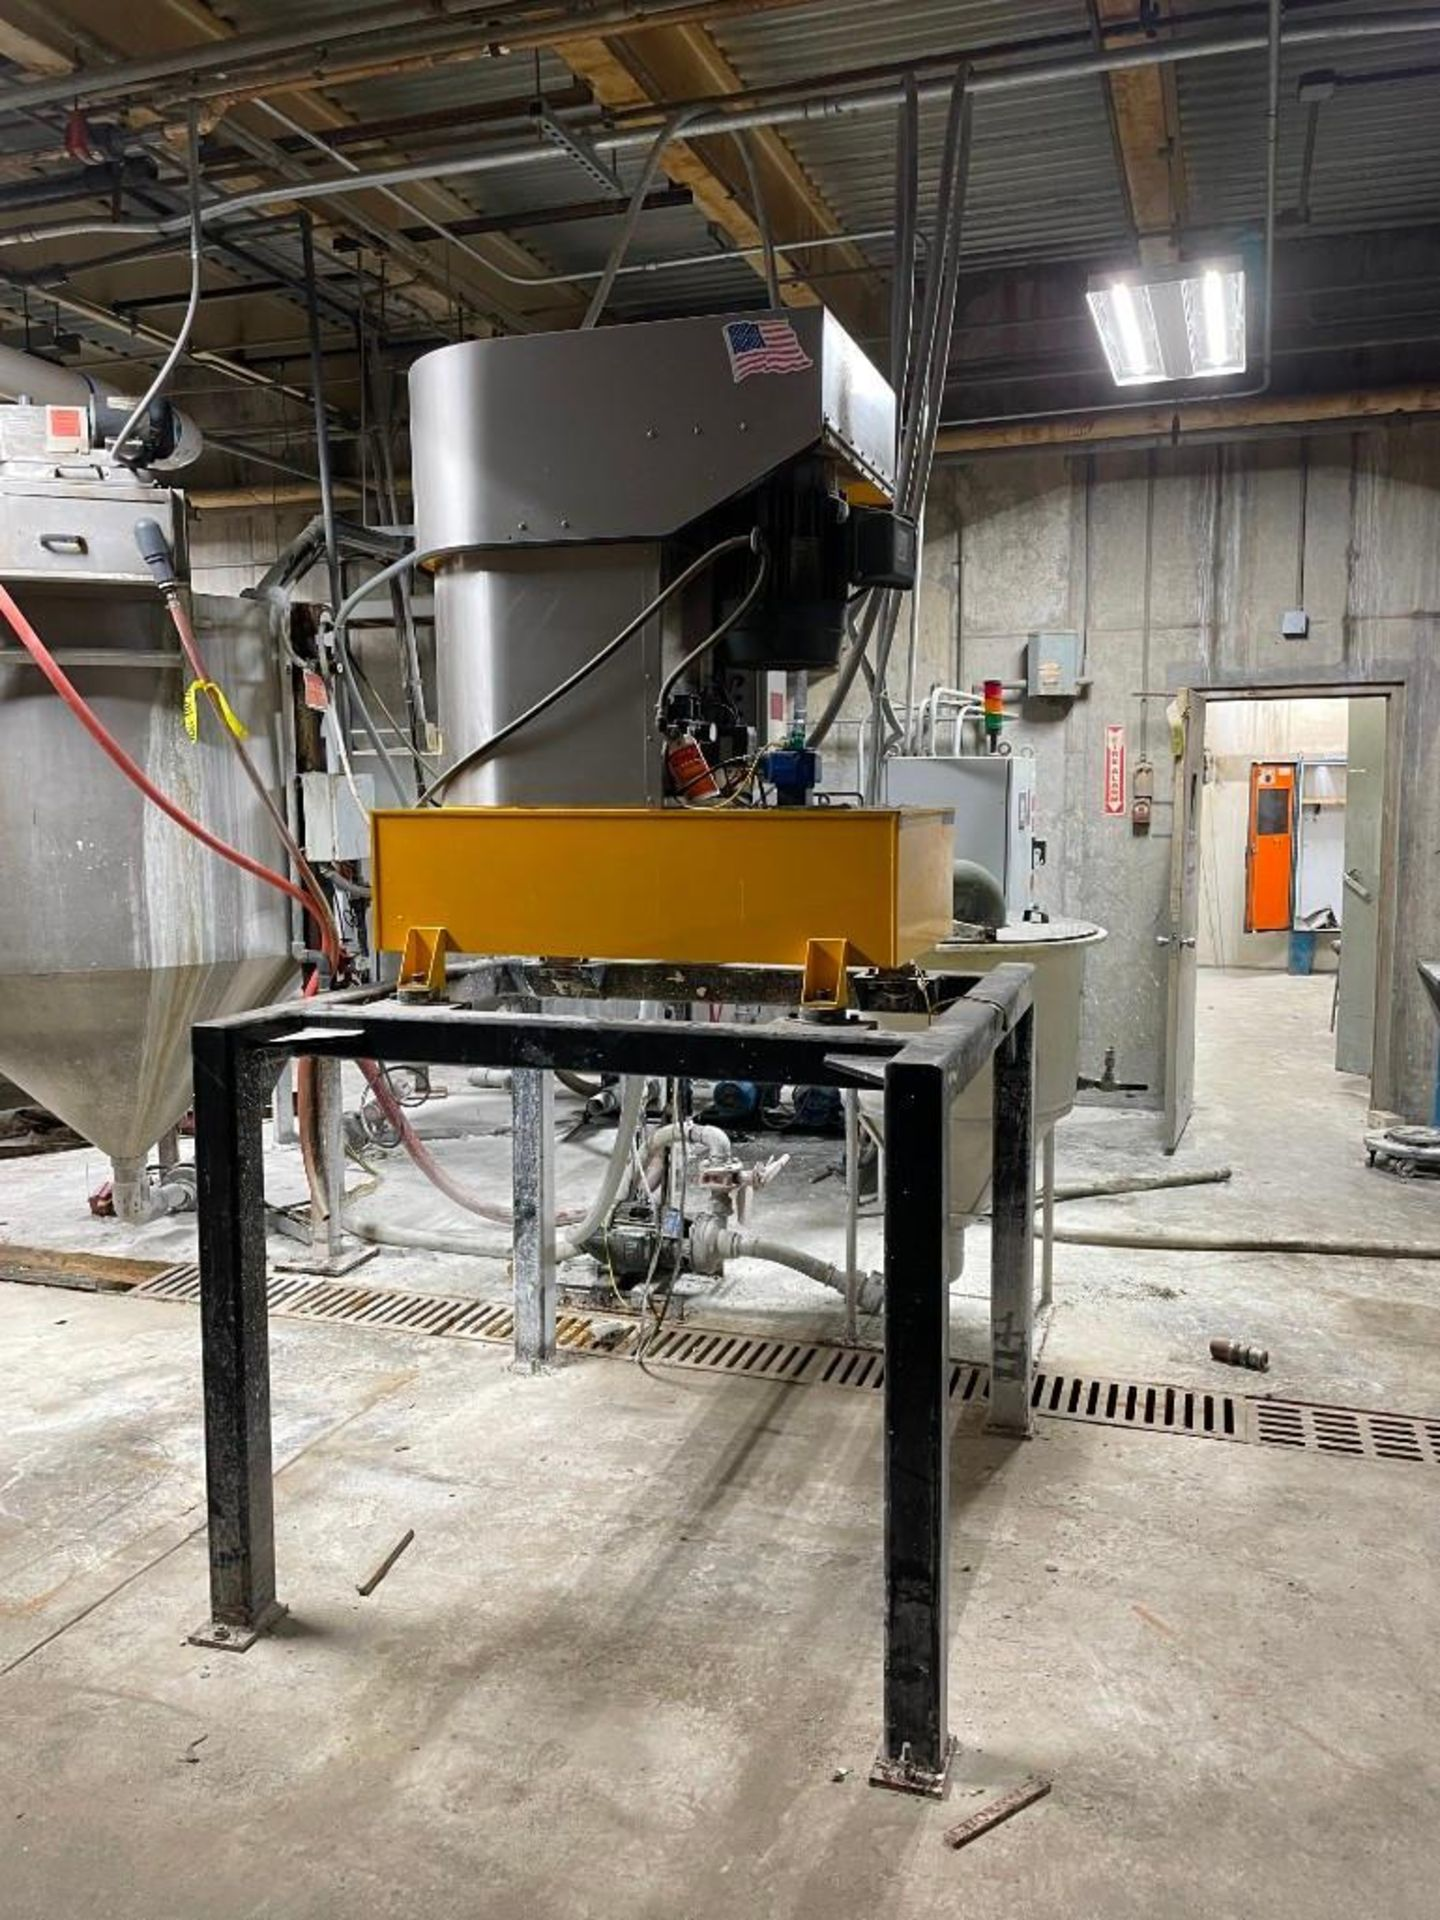 CentraSep Centrifugal Separation 3 Tank Filtration System - Image 3 of 8